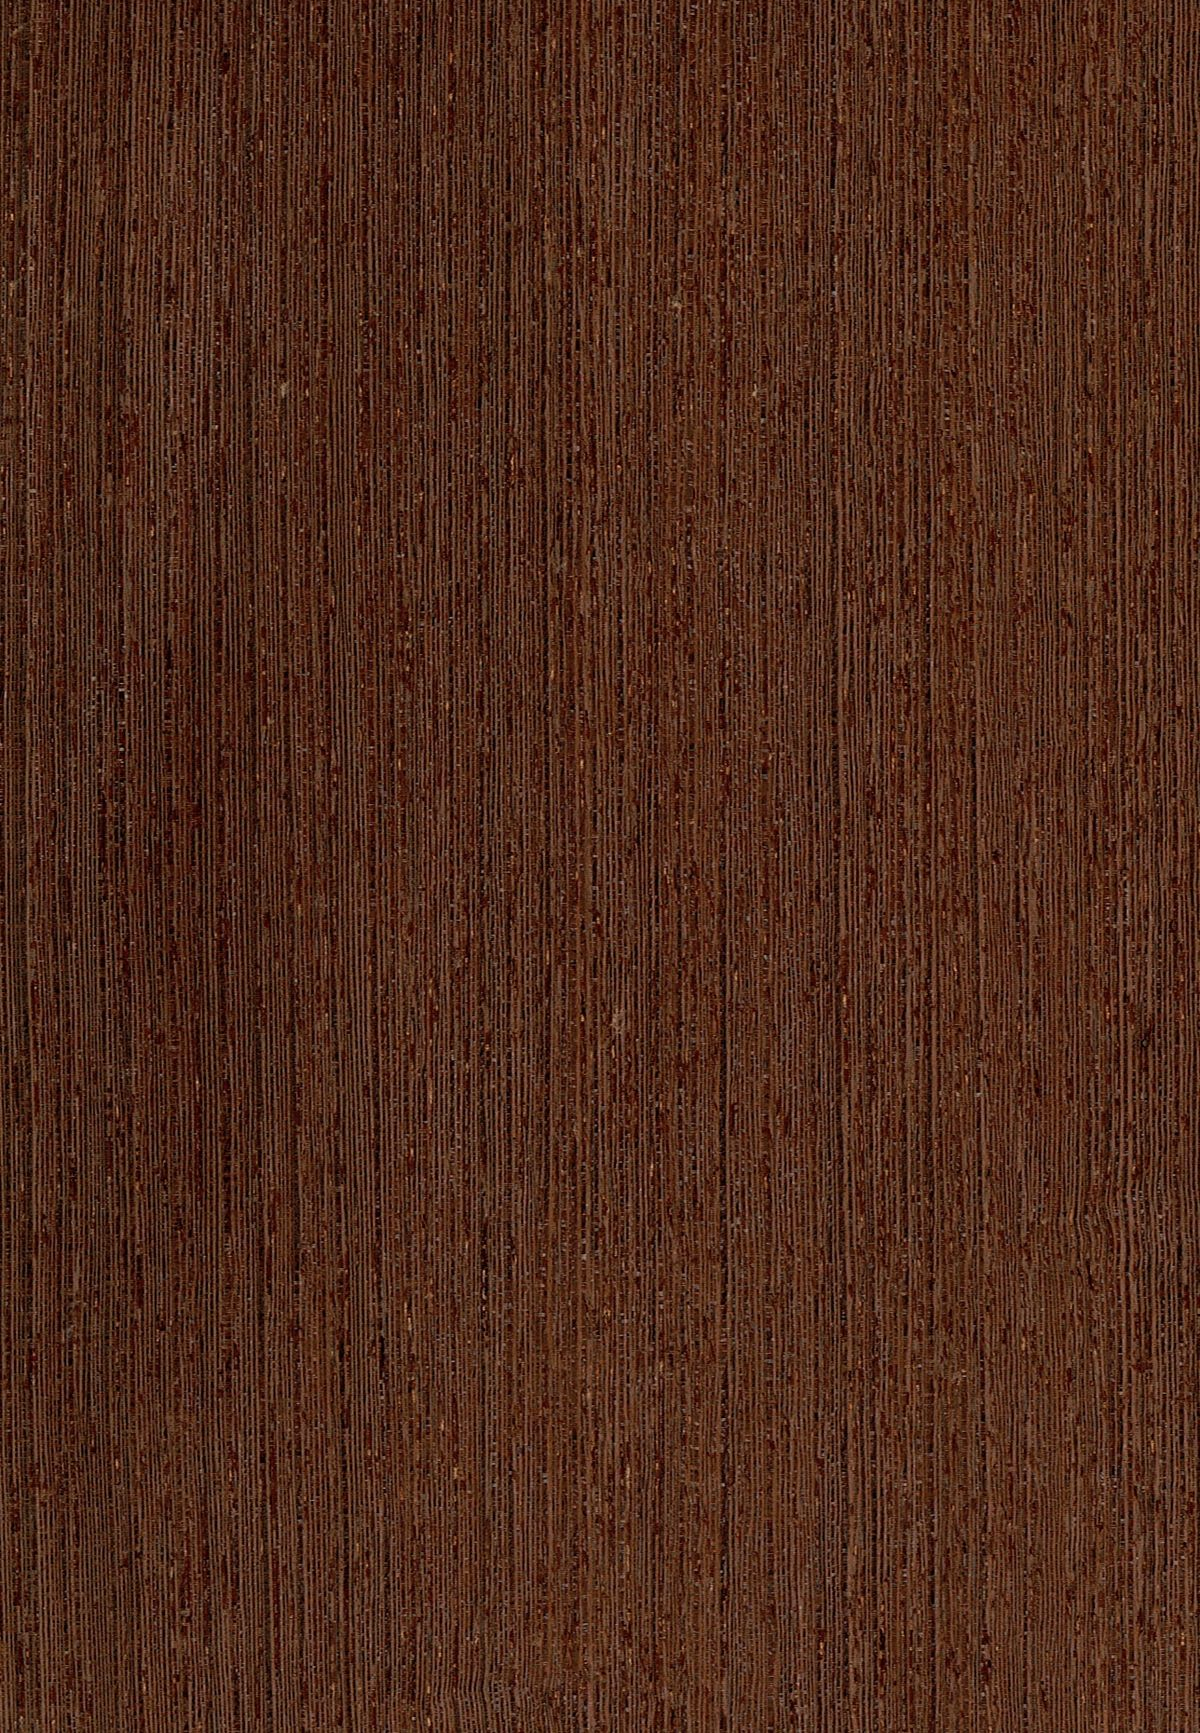 3d Wallpaper For Kitchen Wenge Wiktionary